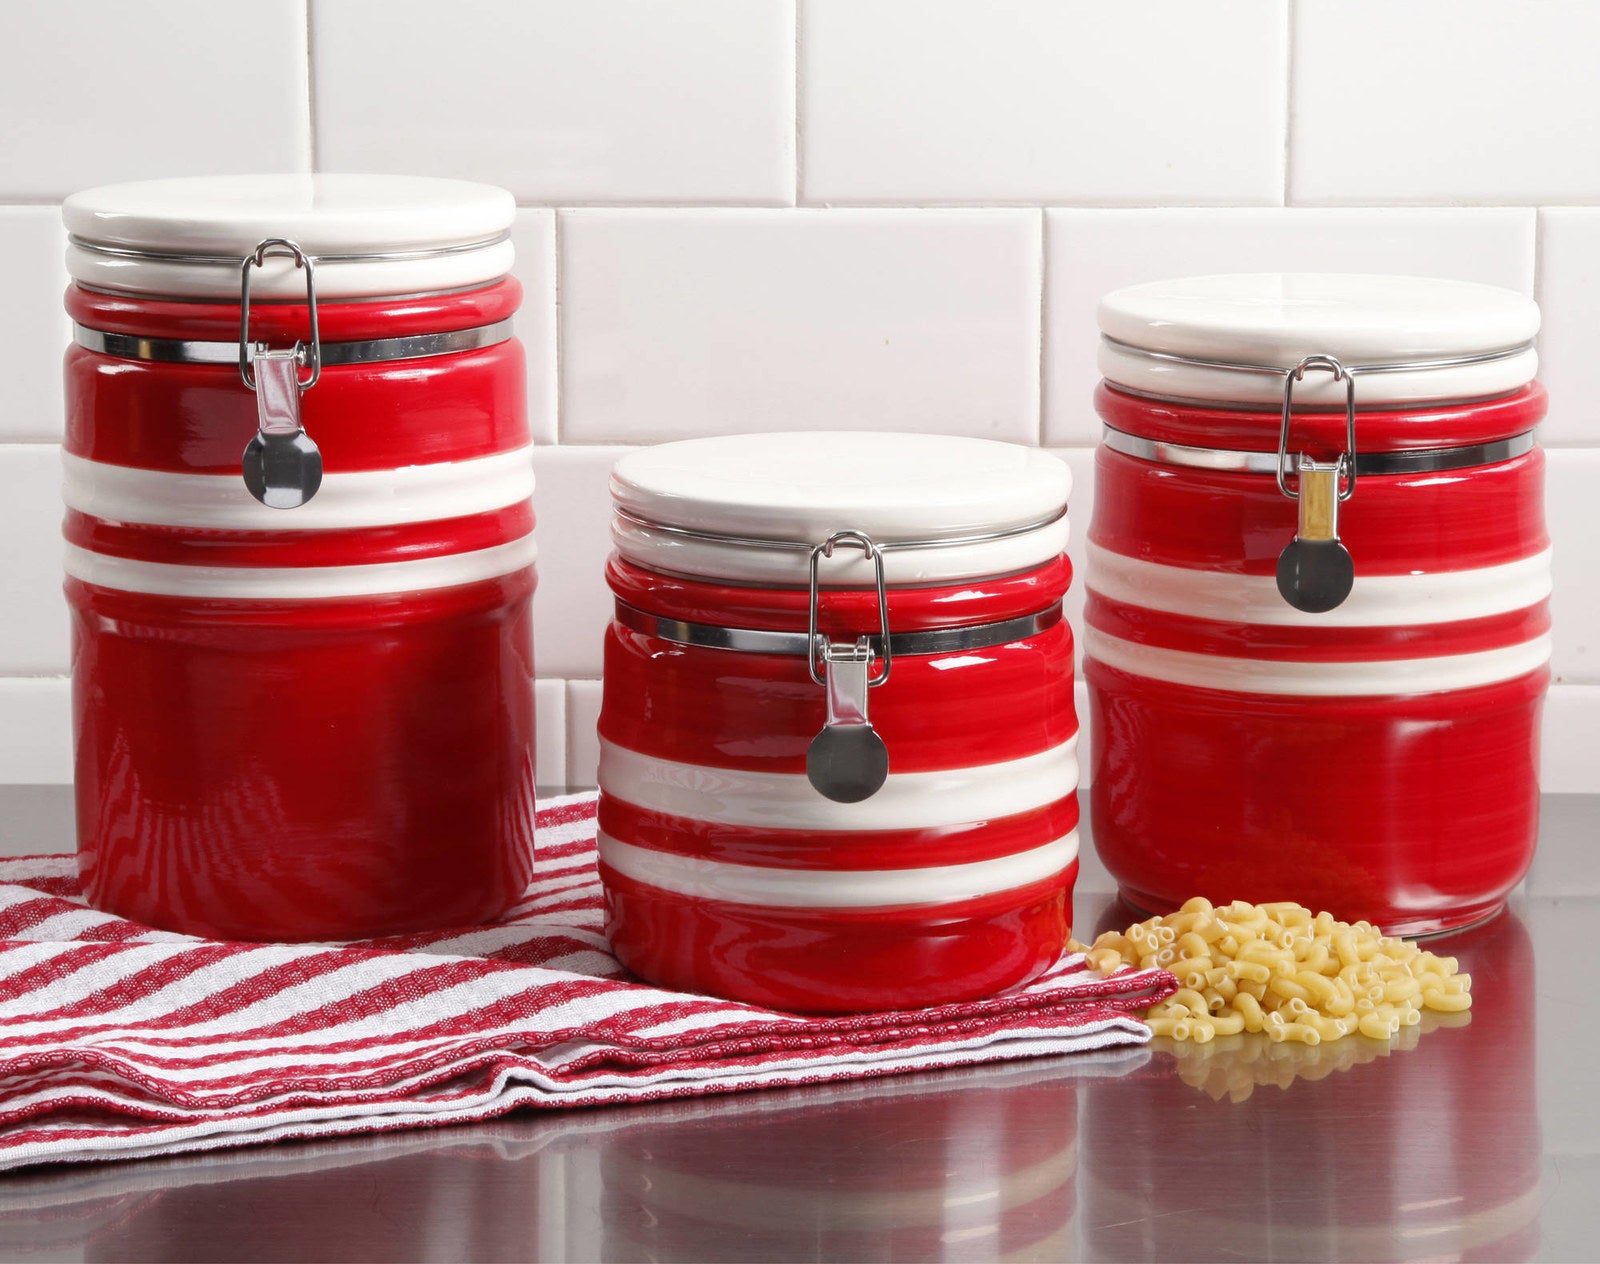 Cherry red canisters to brighten up your kitchen while keeping your ingredients safe from pests.